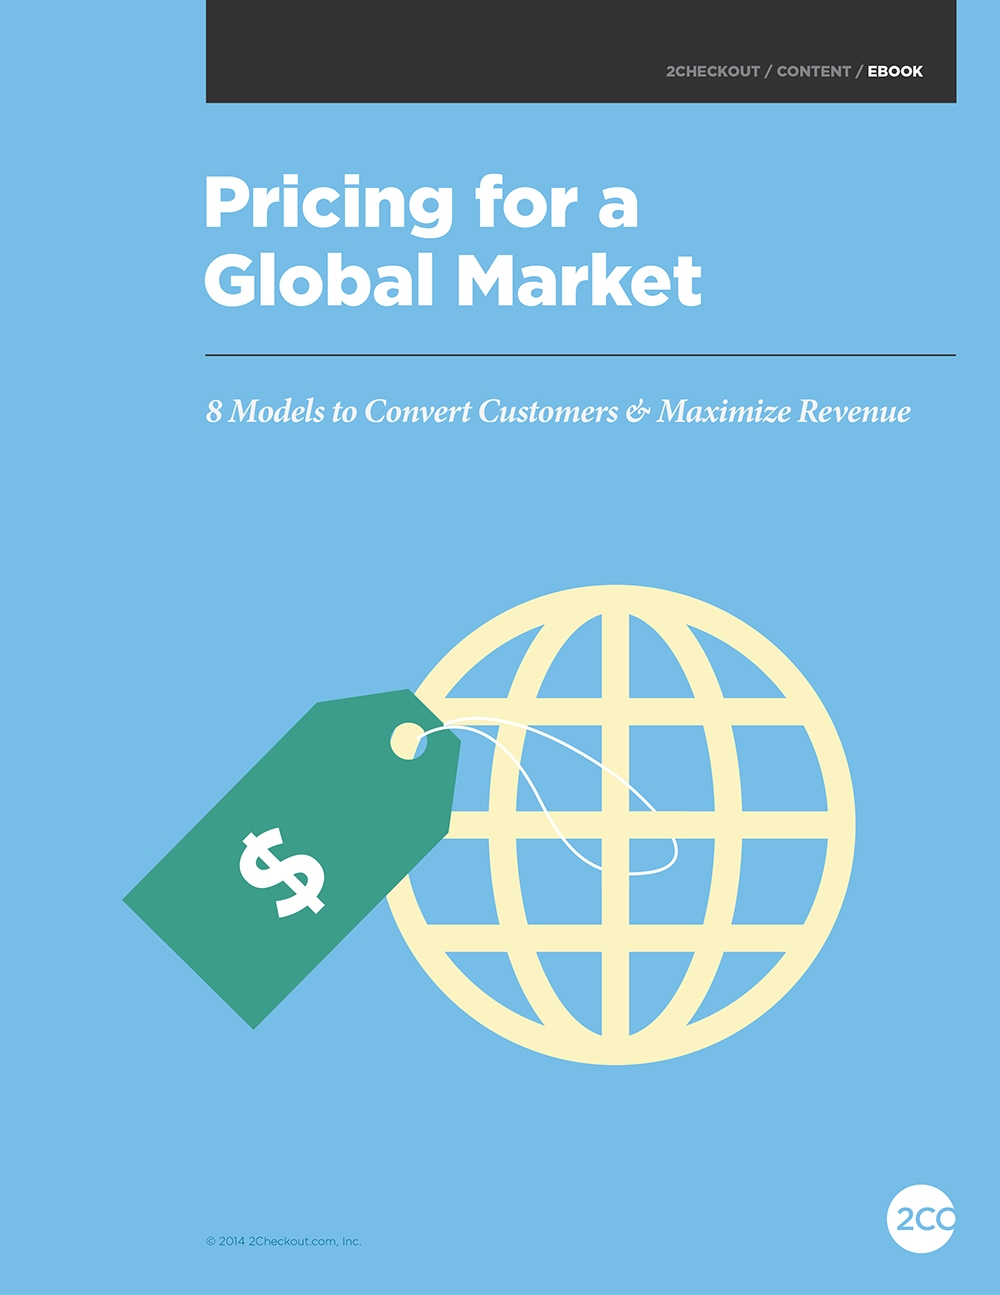 Pricing for a Global Market